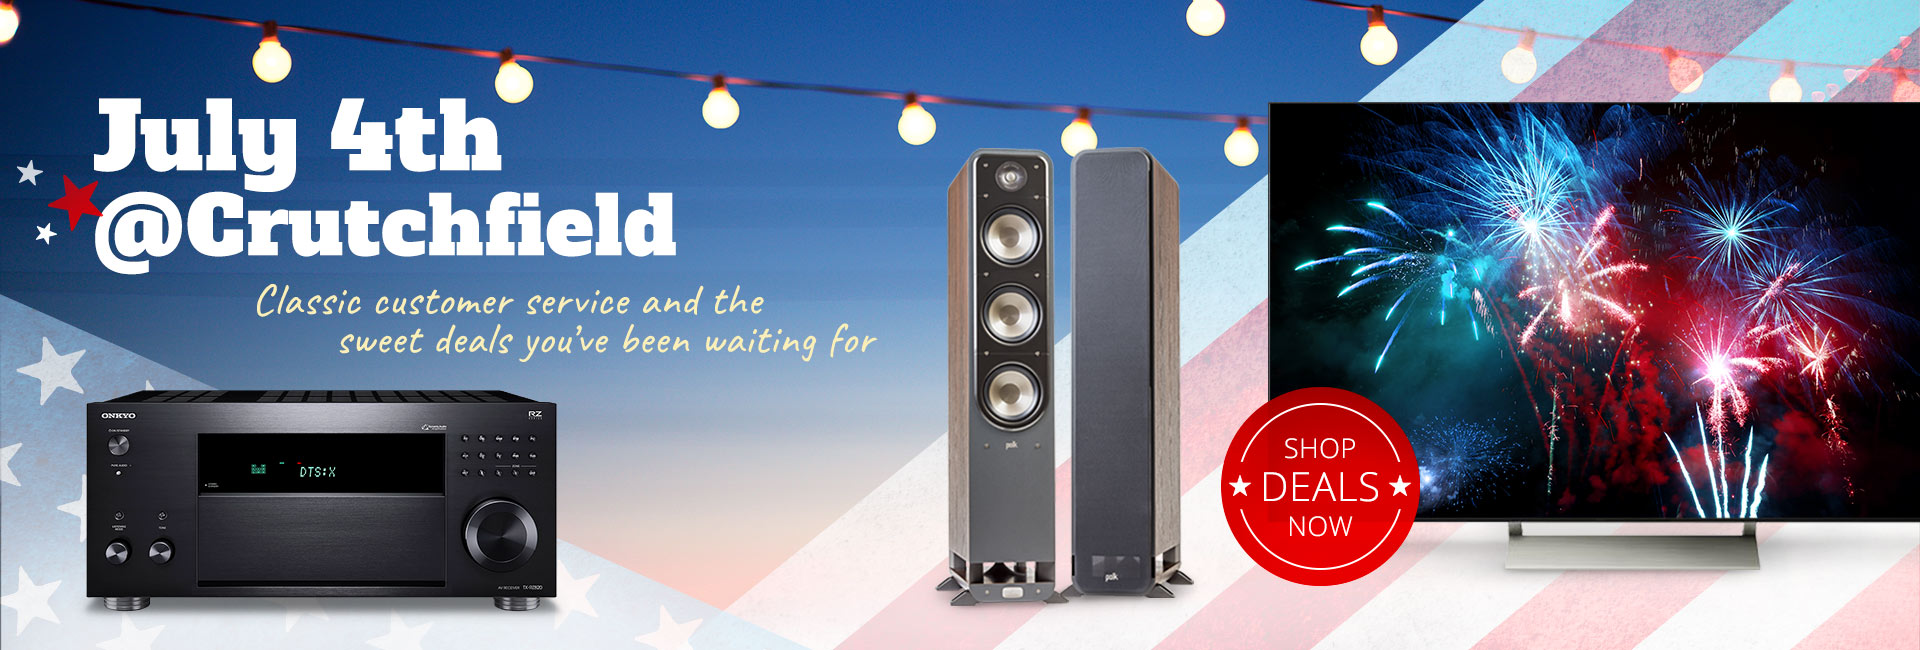 July 4th deals